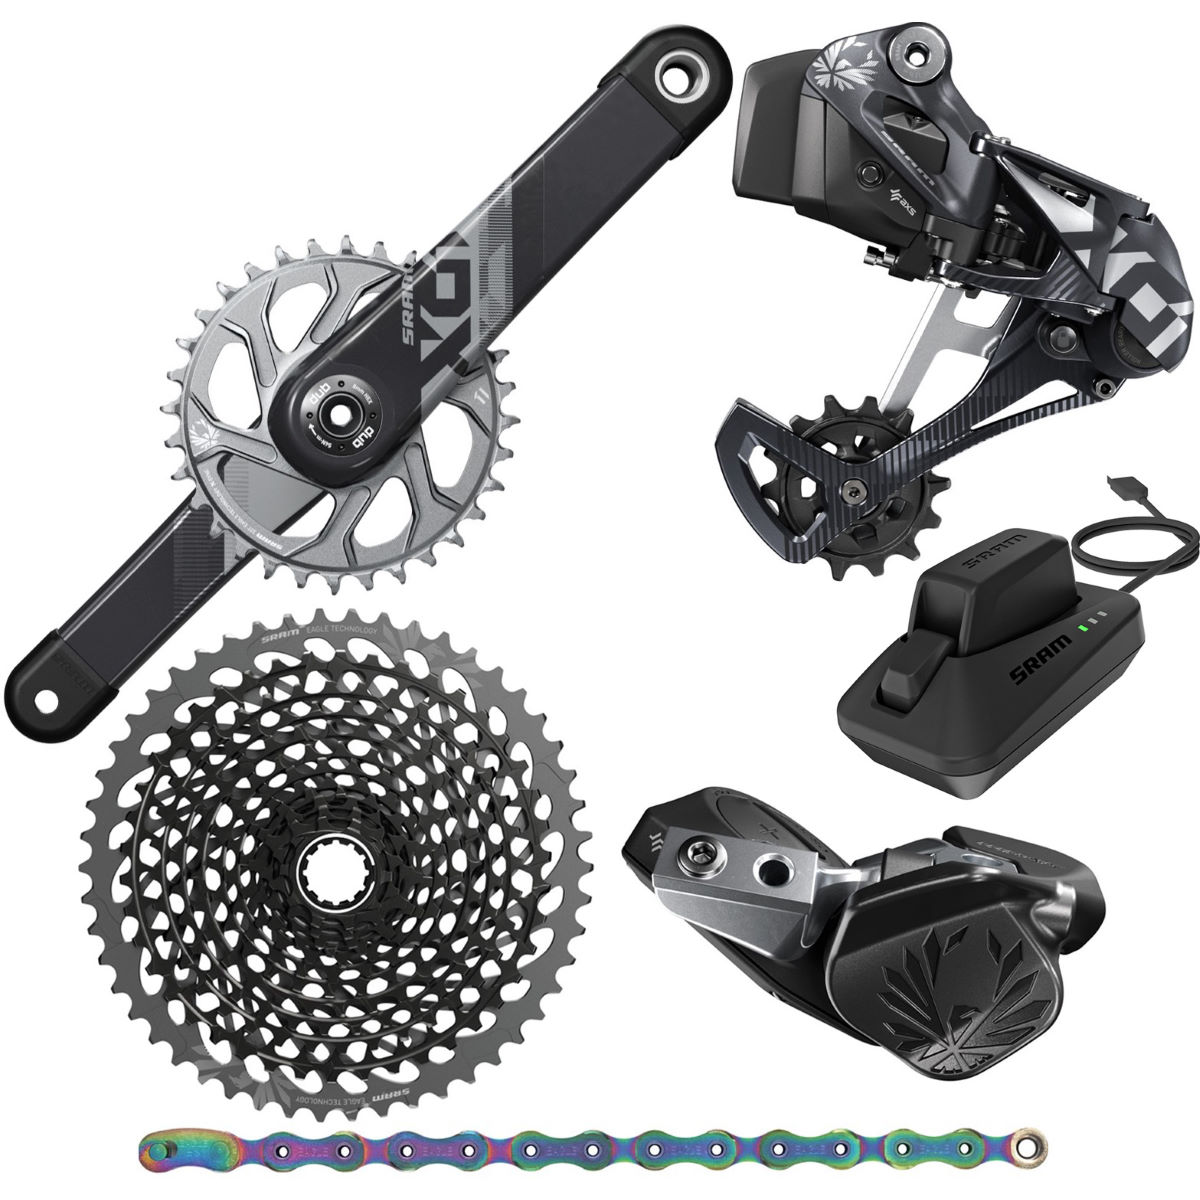 SRAM SRAM X01 Eagle AXS DUB 12Sp Groupset   Groupsets